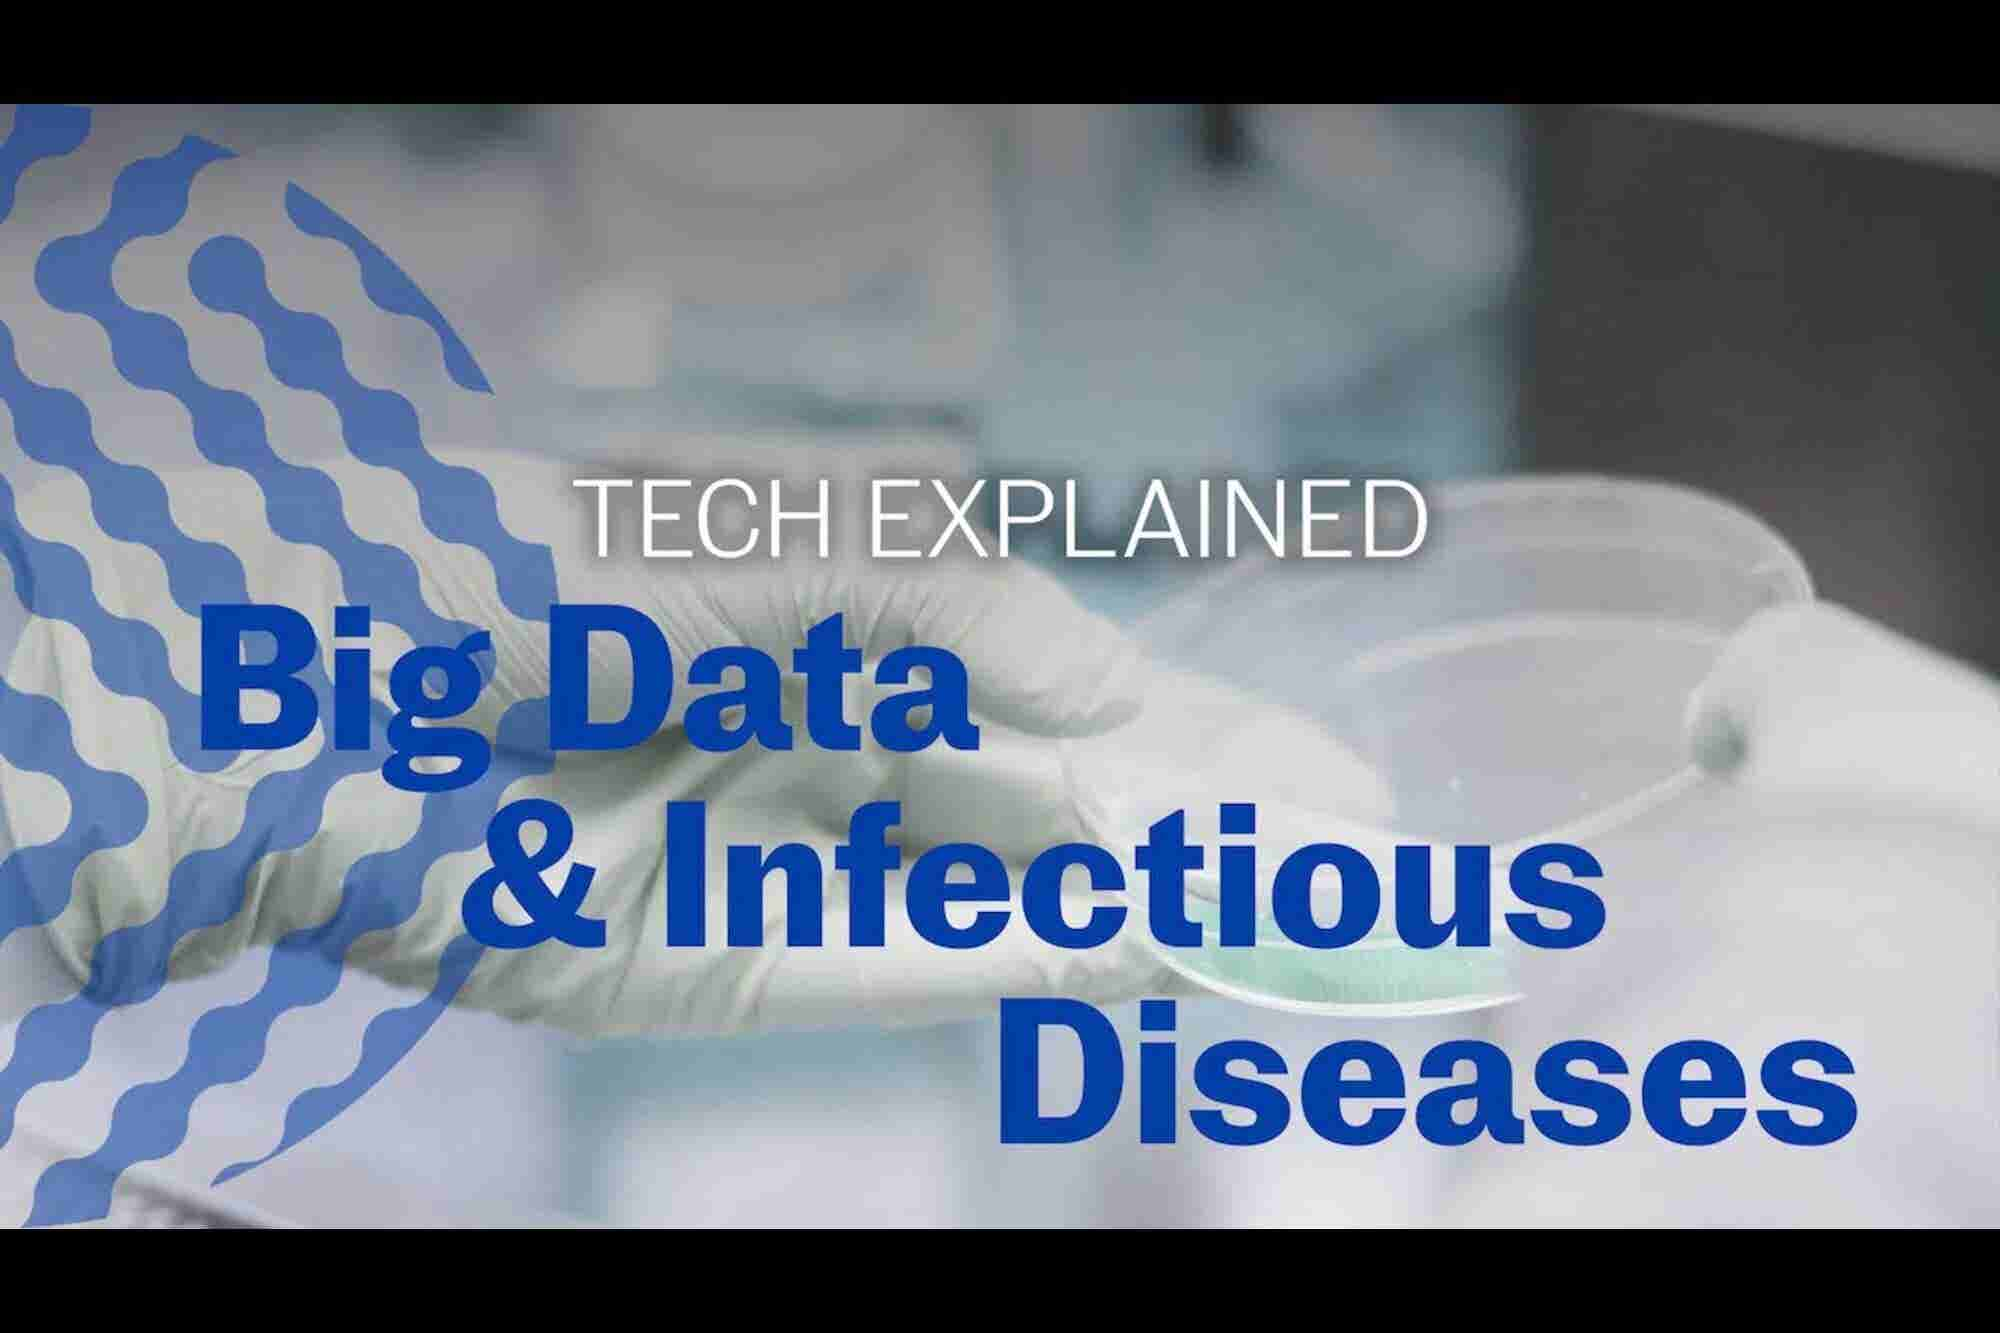 How Big Data Can Help Teach Us About Infectious Diseases